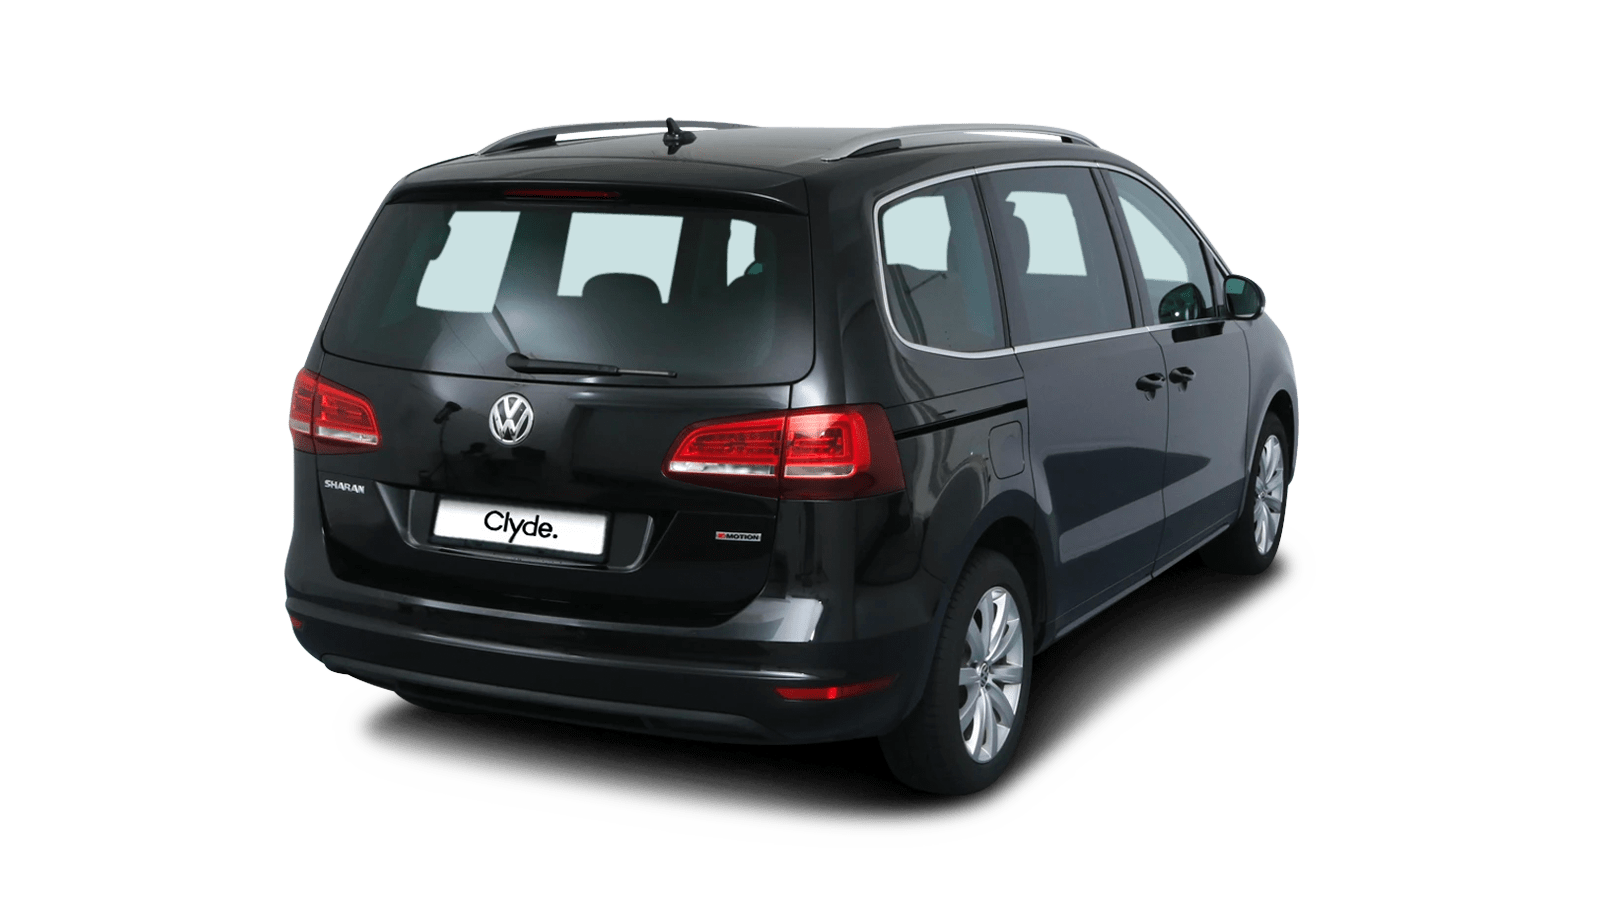 VW Sharan Black front - Clyde car subscription